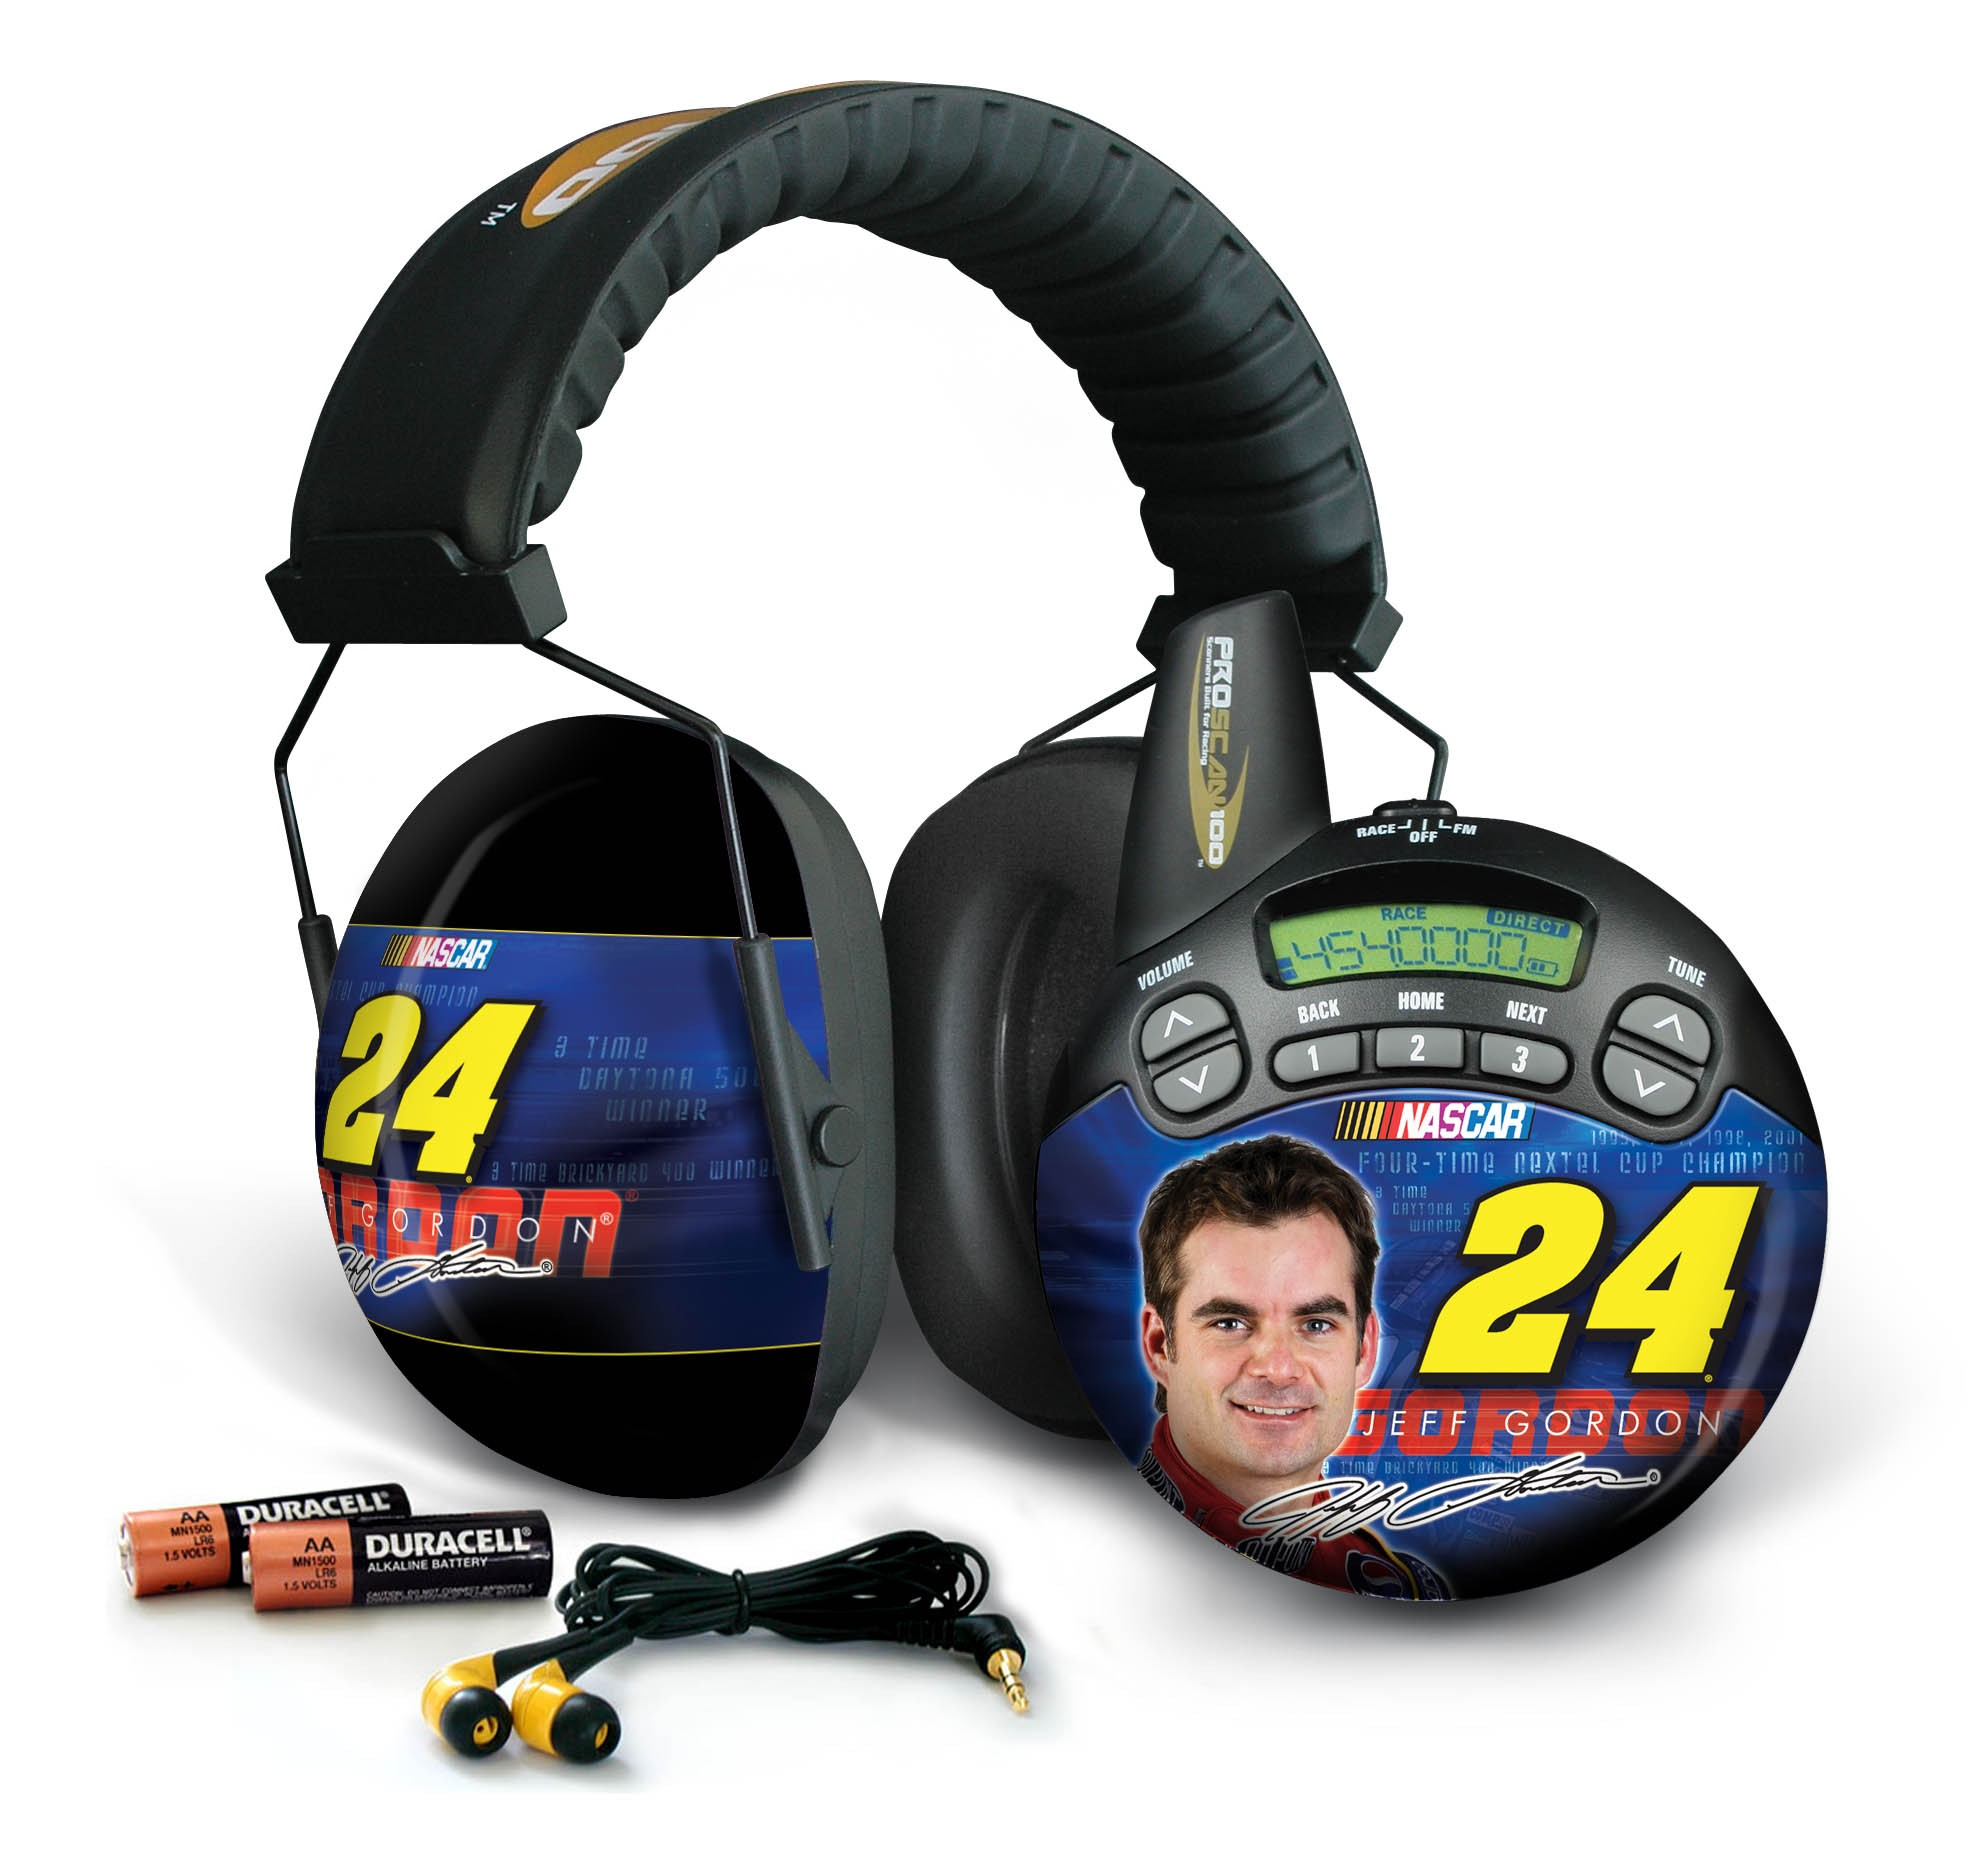 Jeff Gordon #24  Nascar ProScan 100 Trackside Scanner and Earmuff